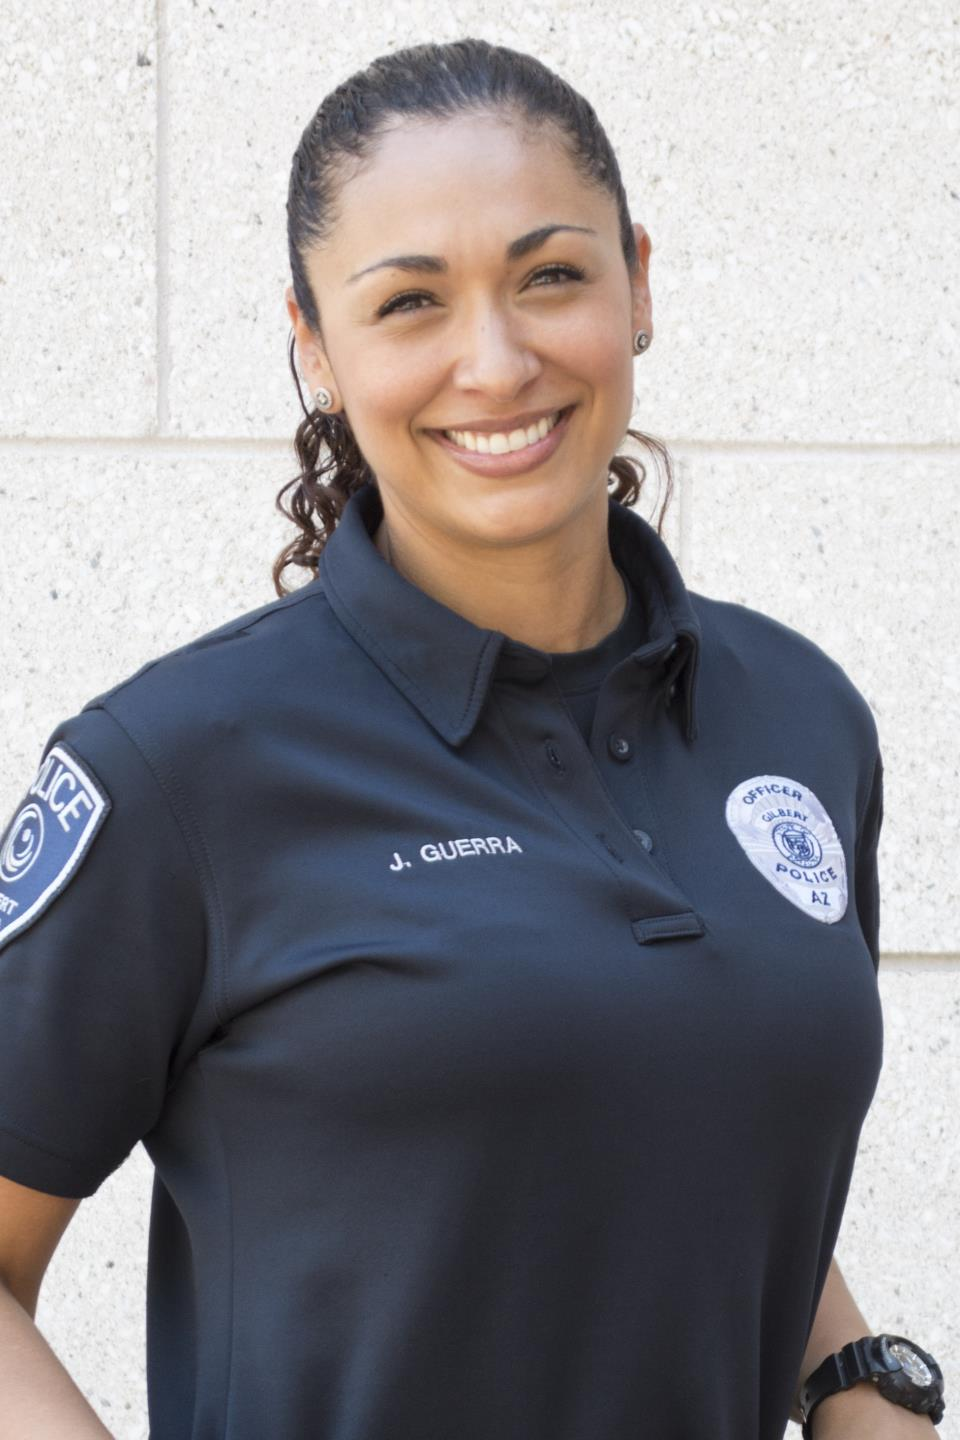 Women In Policing_Guerra